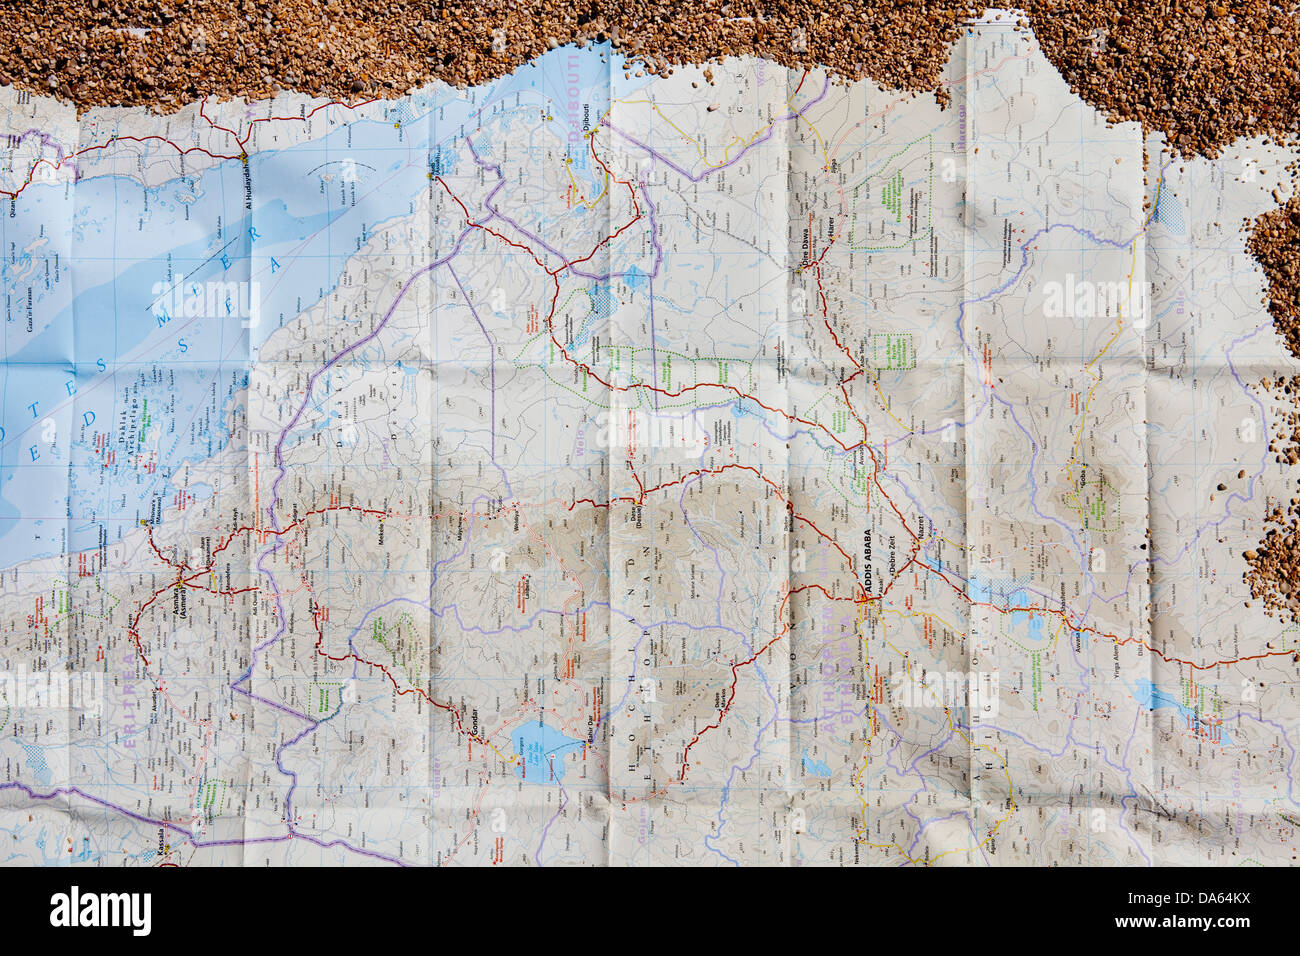 Map, Card, Ethiopia, Djibouti, Africa, sand, map - Stock Image